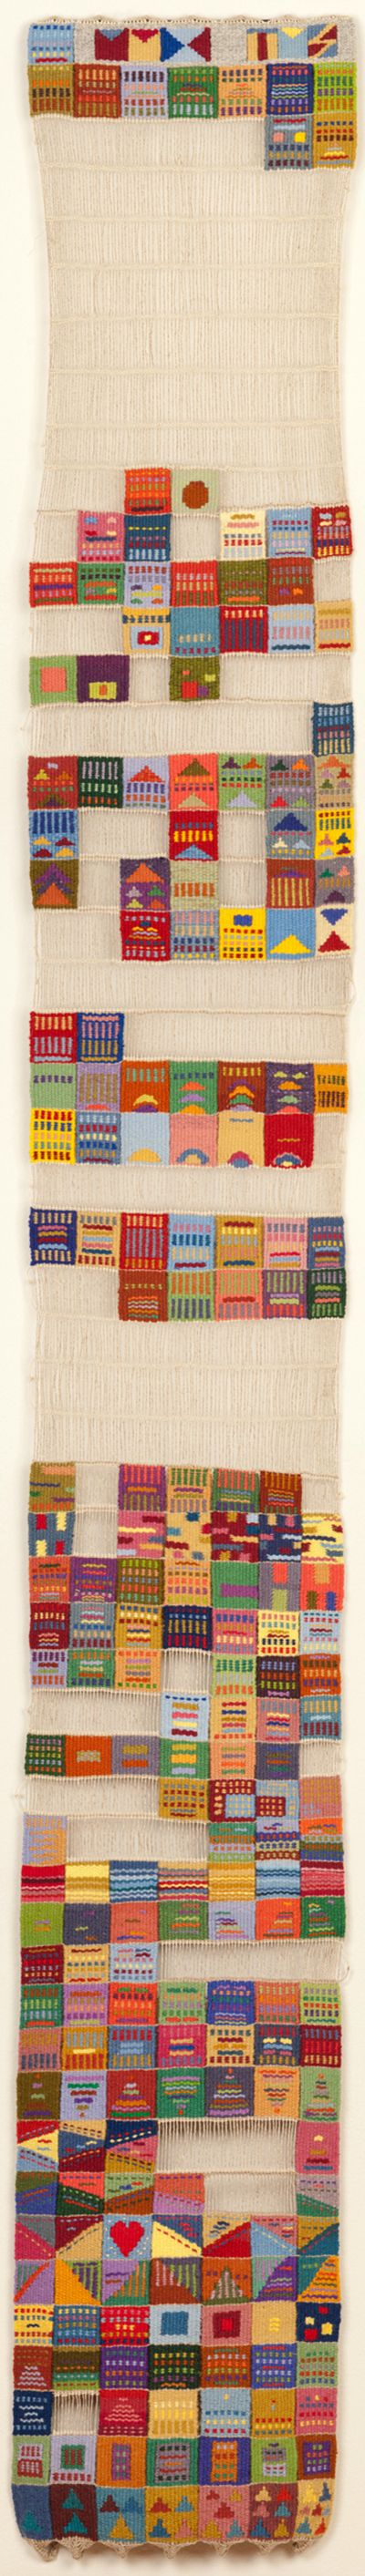 Tommye Scanlin, Tapestry of Days. 2010; This tapestry is handwoven with each area or section woven on each day as the year progressed. Indicators for the date were woven in some way. Empty warps were used to record days away from the studio in 2010. For more spring-themed fiber art, see the Spring 2013 issue of FiberArtNow.net magazine.